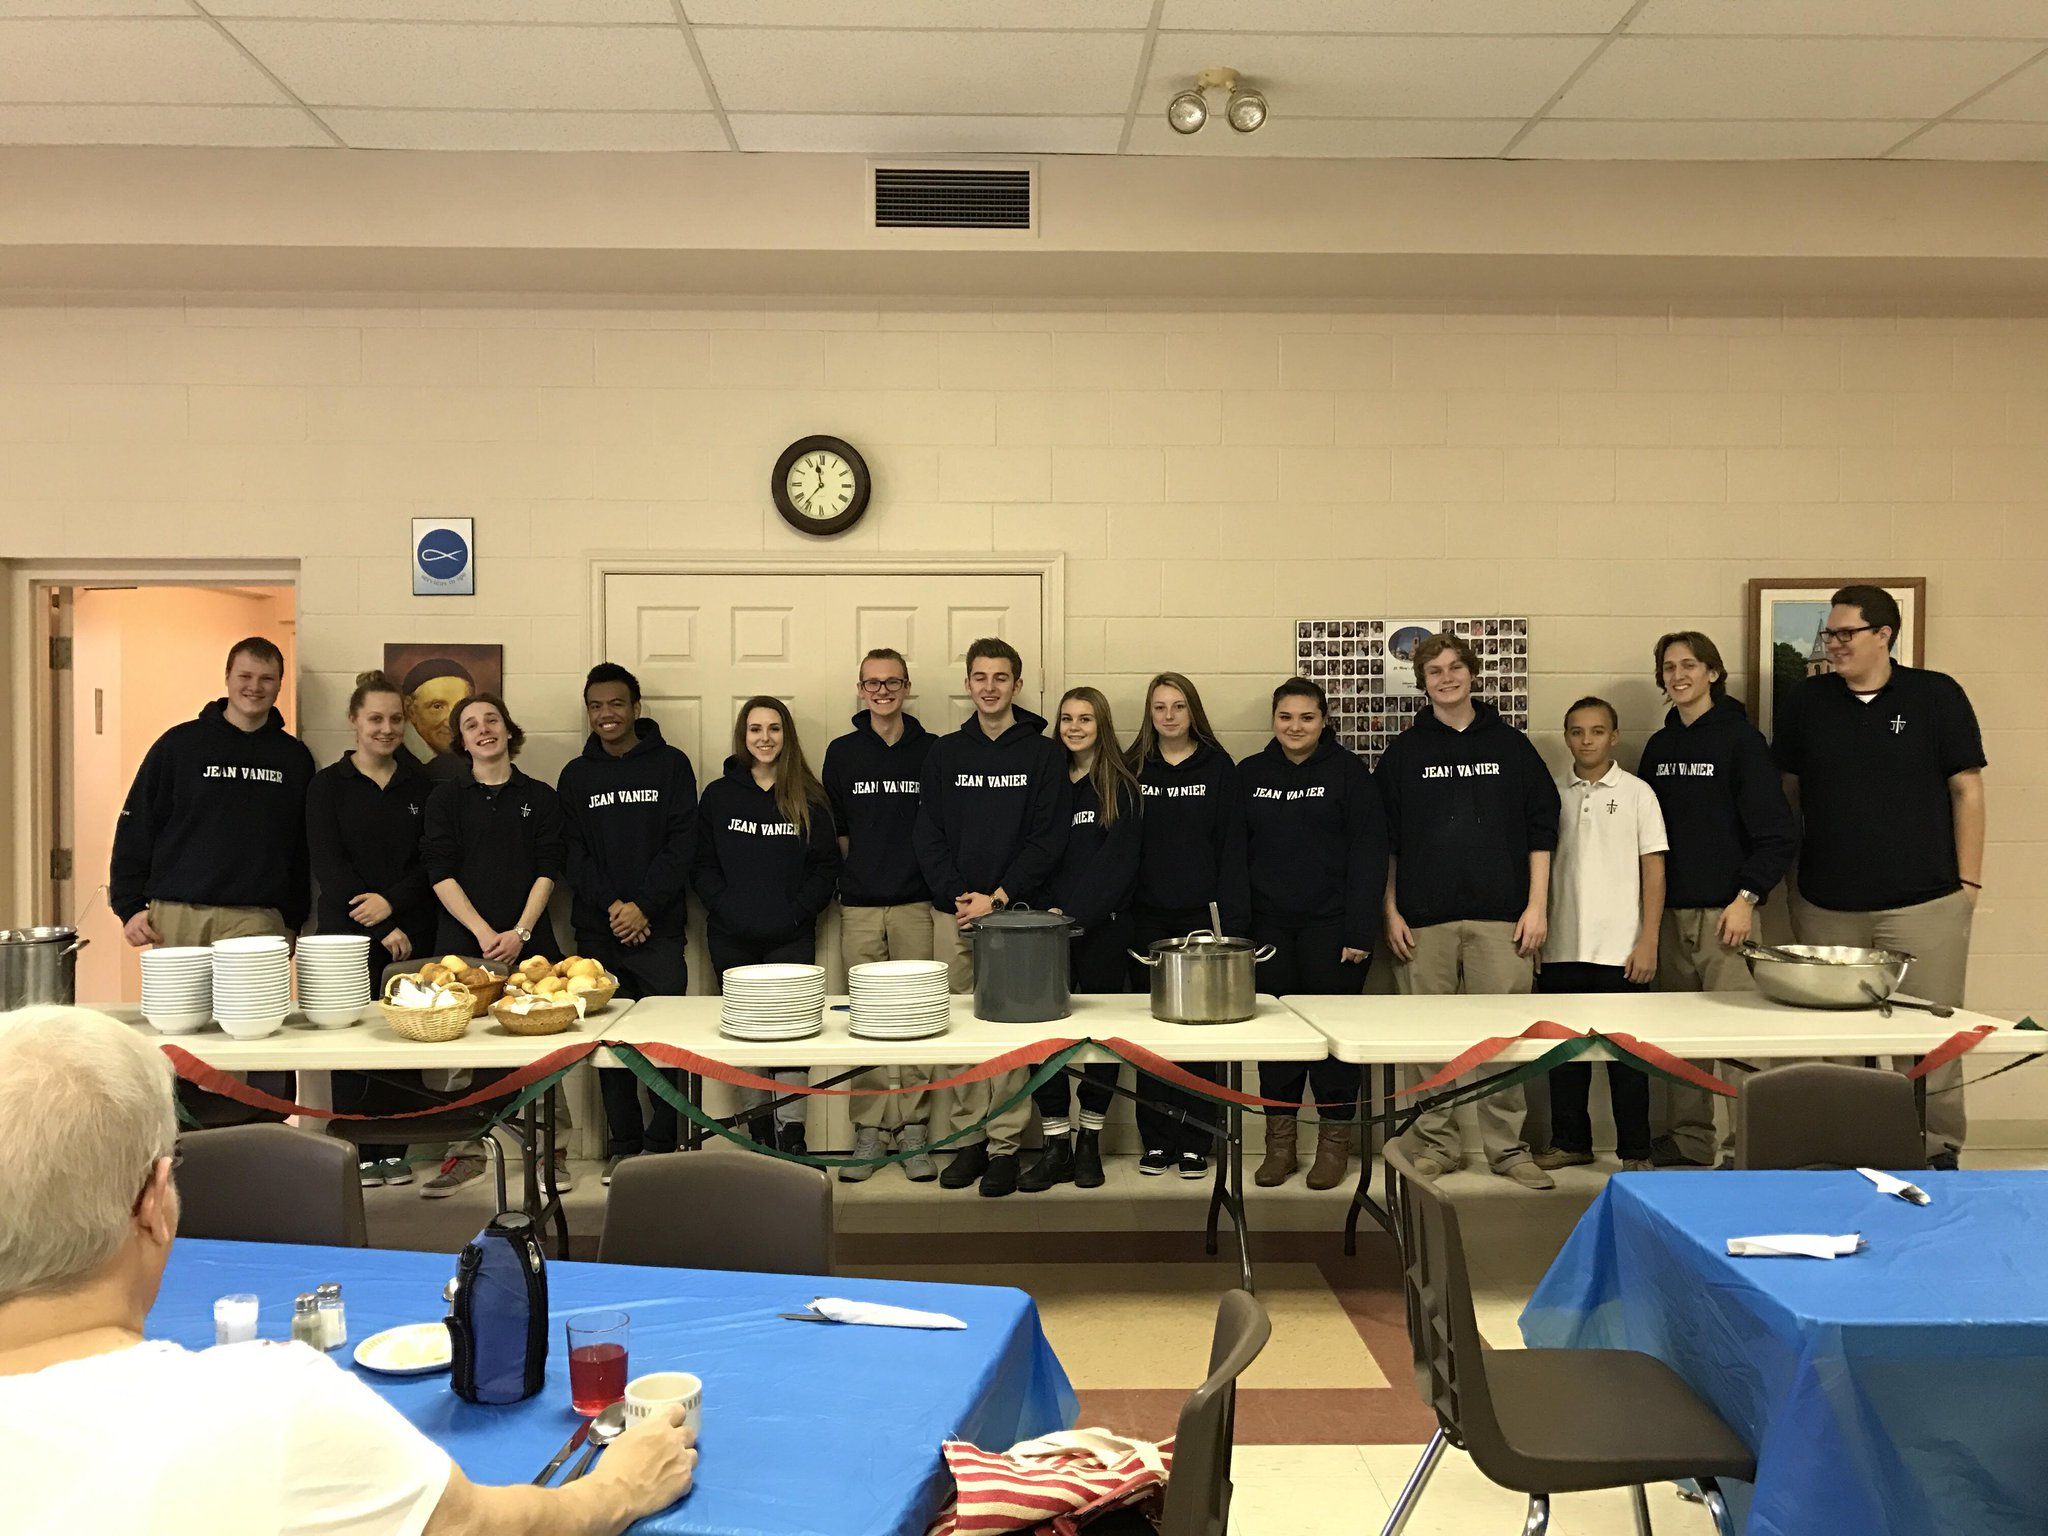 Hospitality #SMSM students from @SMCDSB Vanier in Collingwood prepared lunch at St. Mary's church, serving over 150 in 2 days.  Great work https://t.co/ygx3i3Pyjr